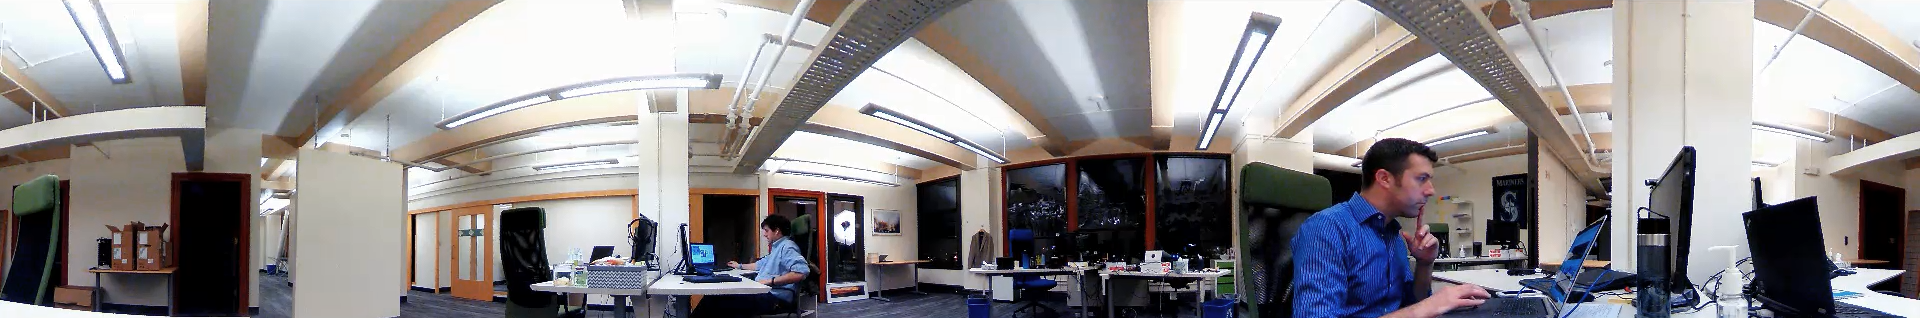 360-degree panorama as captured by the V.360° - conference room recording equipment